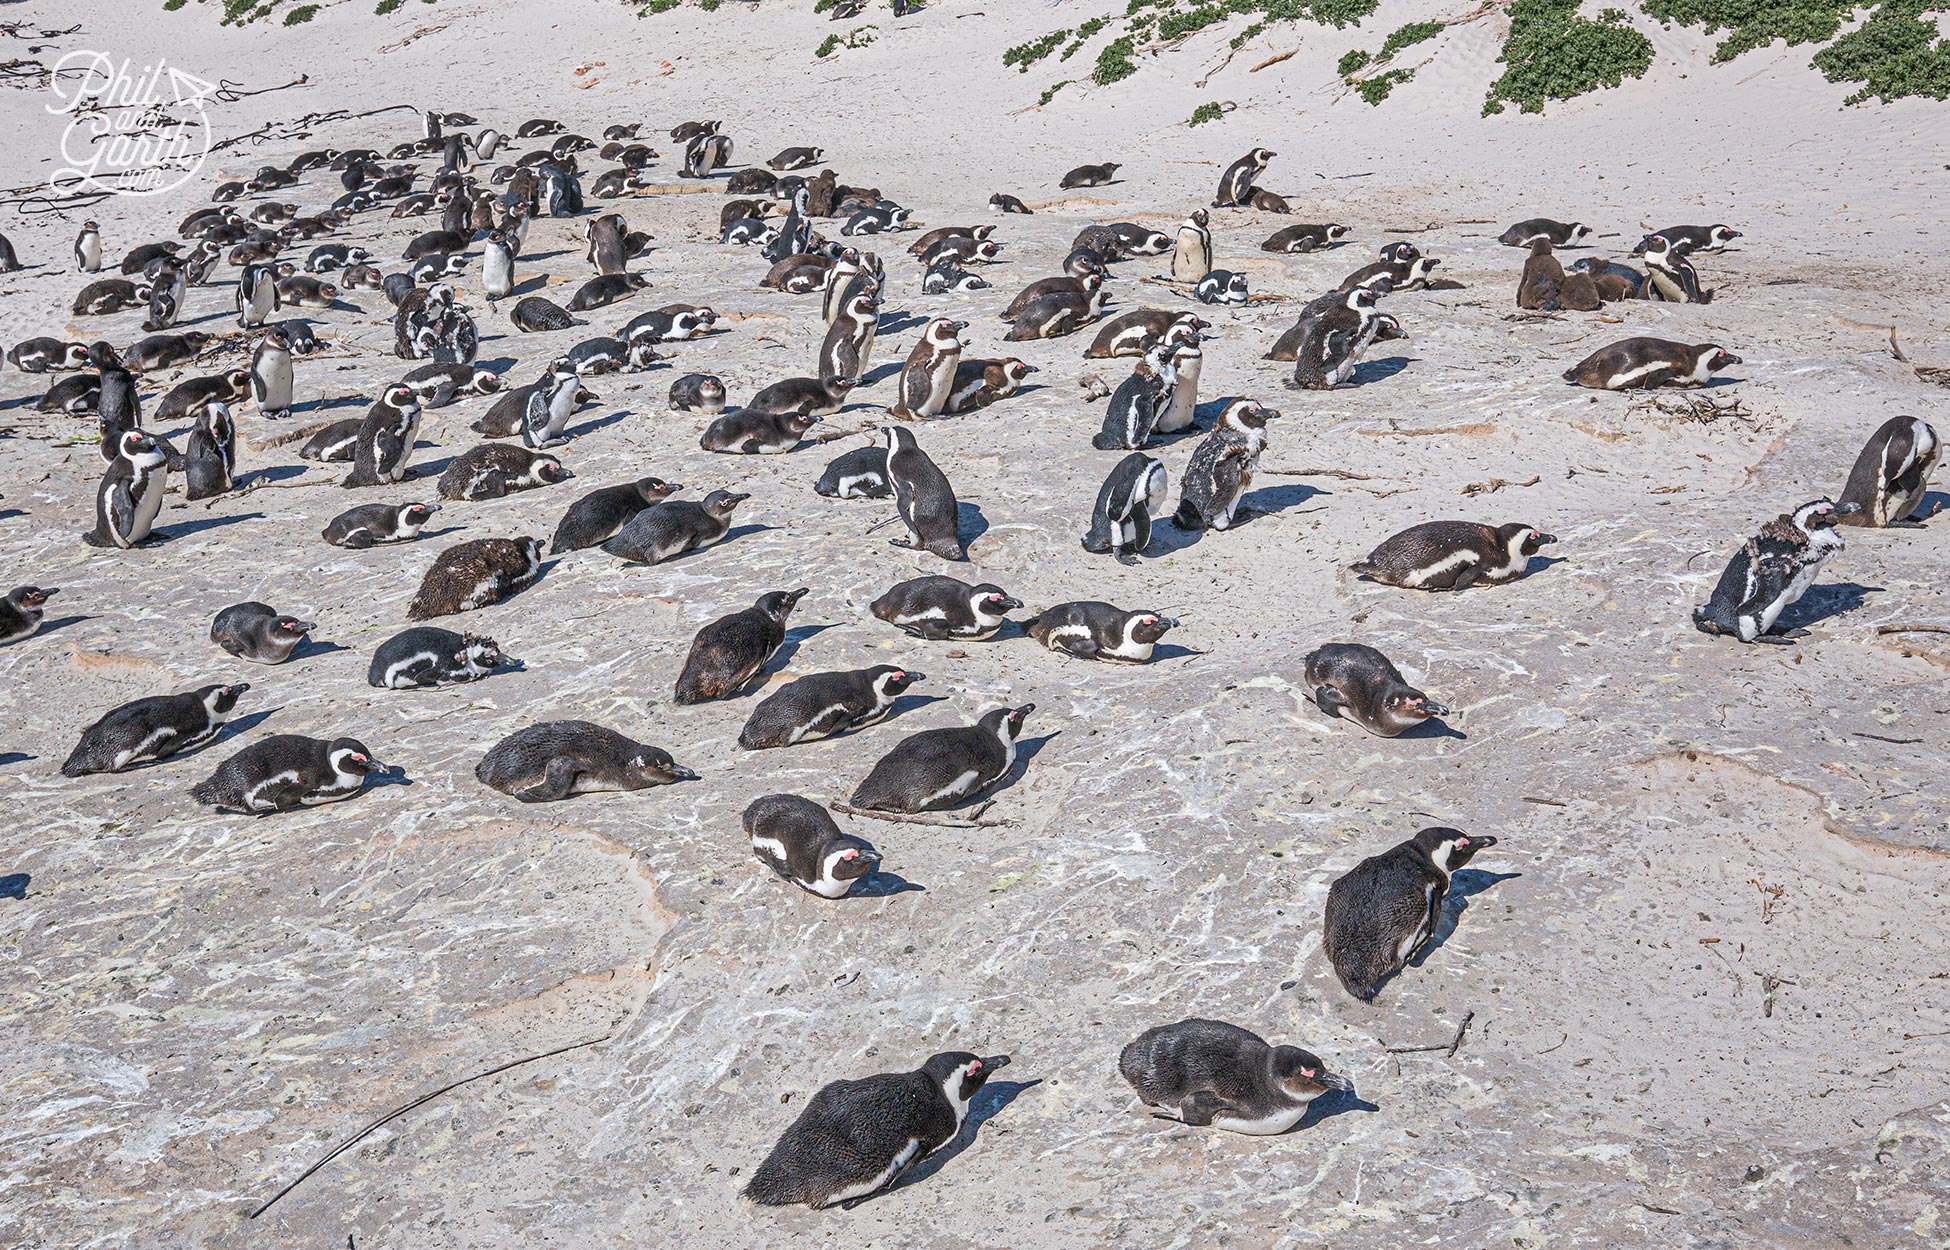 African penguins are social breeders and nest together in colonies.